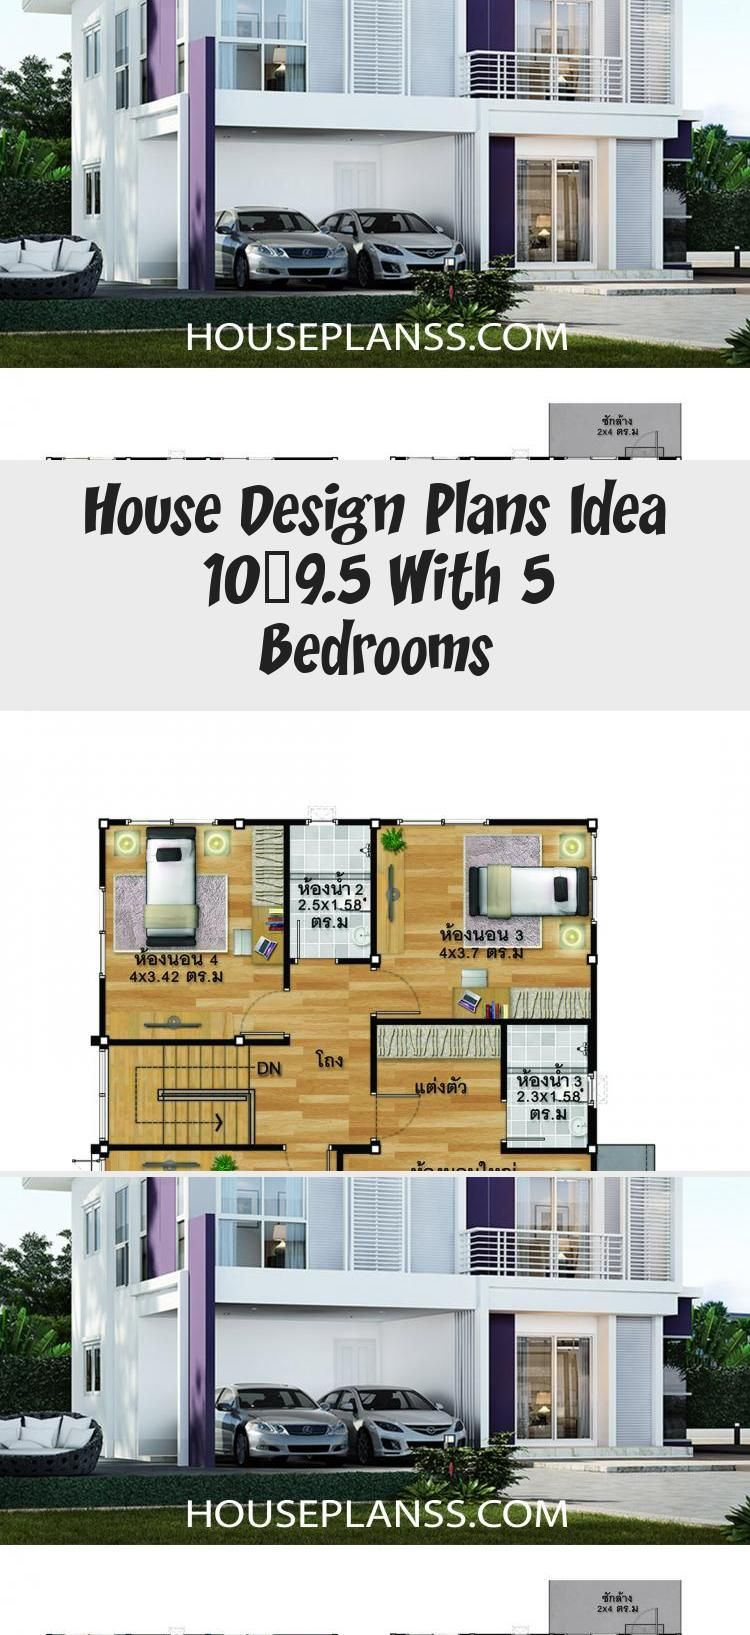 House Design Plans Idea 10x9 5 With 5 Bedrooms Home Ideassearch Floorplans4bedroomcourtyard Floorplans4bedroomra In 2020 Home Design Plans House Design Floor Plans